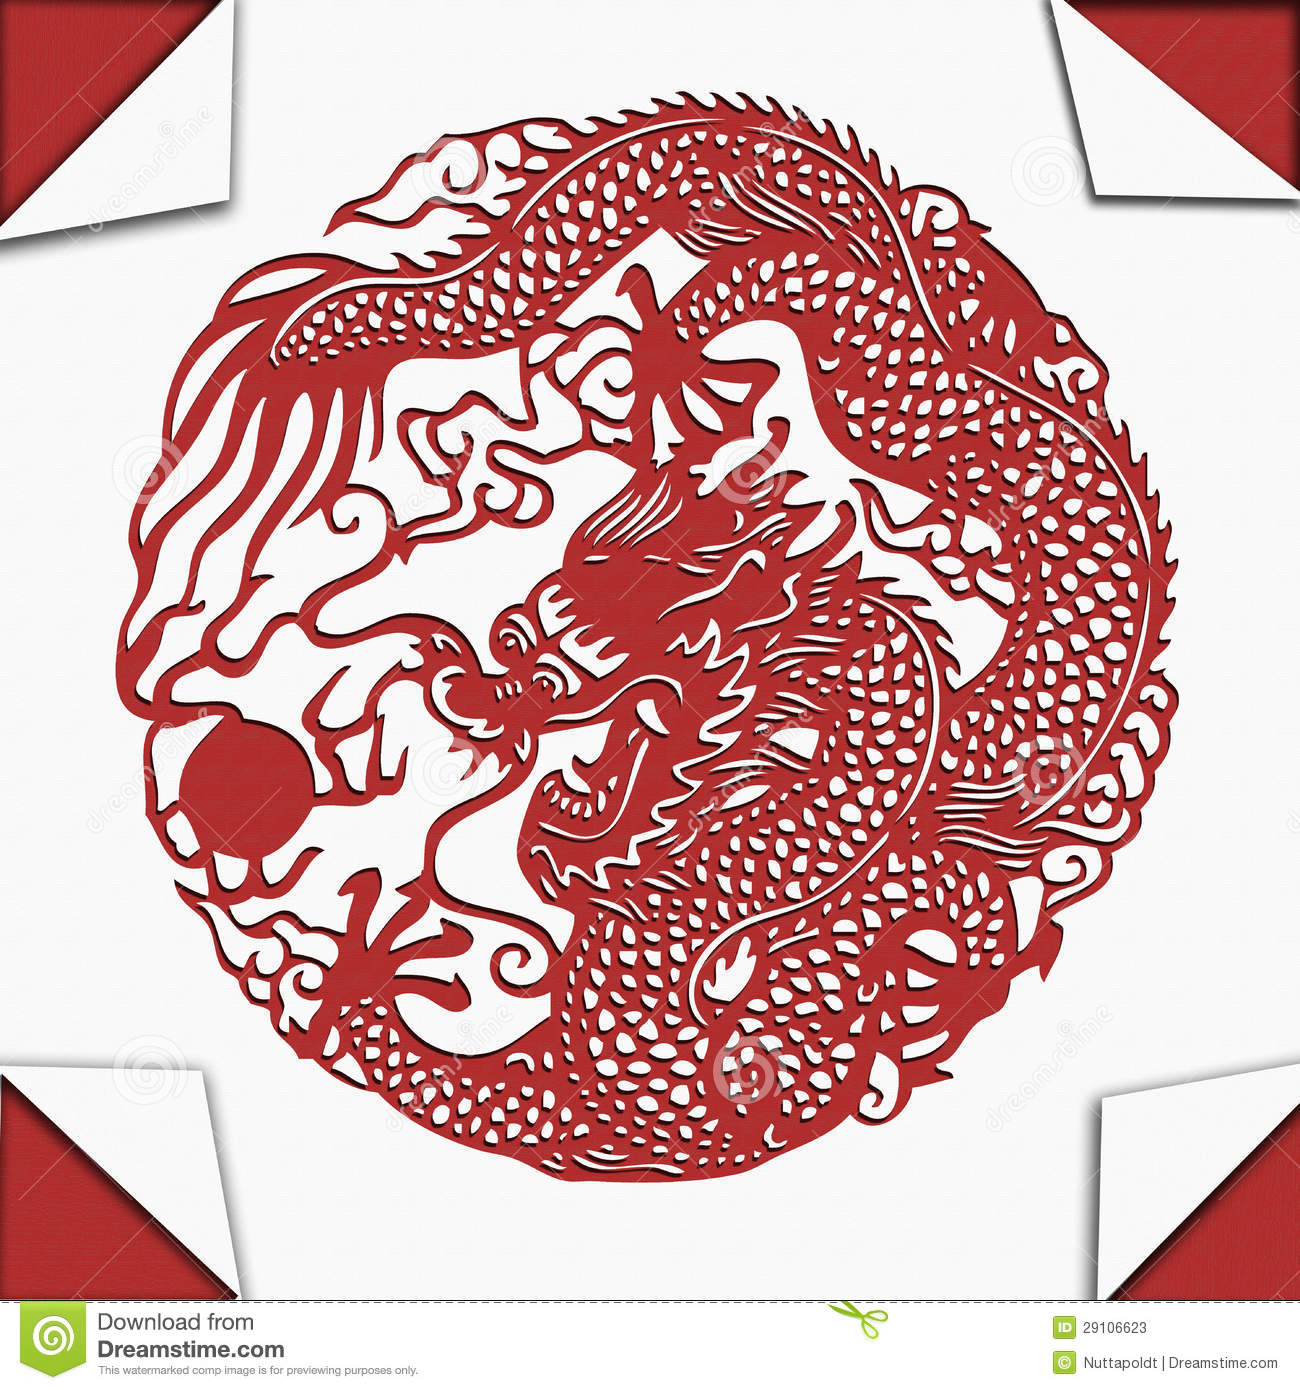 Chinese dragon paper cut art stock photos image 29106623 for Chinese paper cutting templates dragon